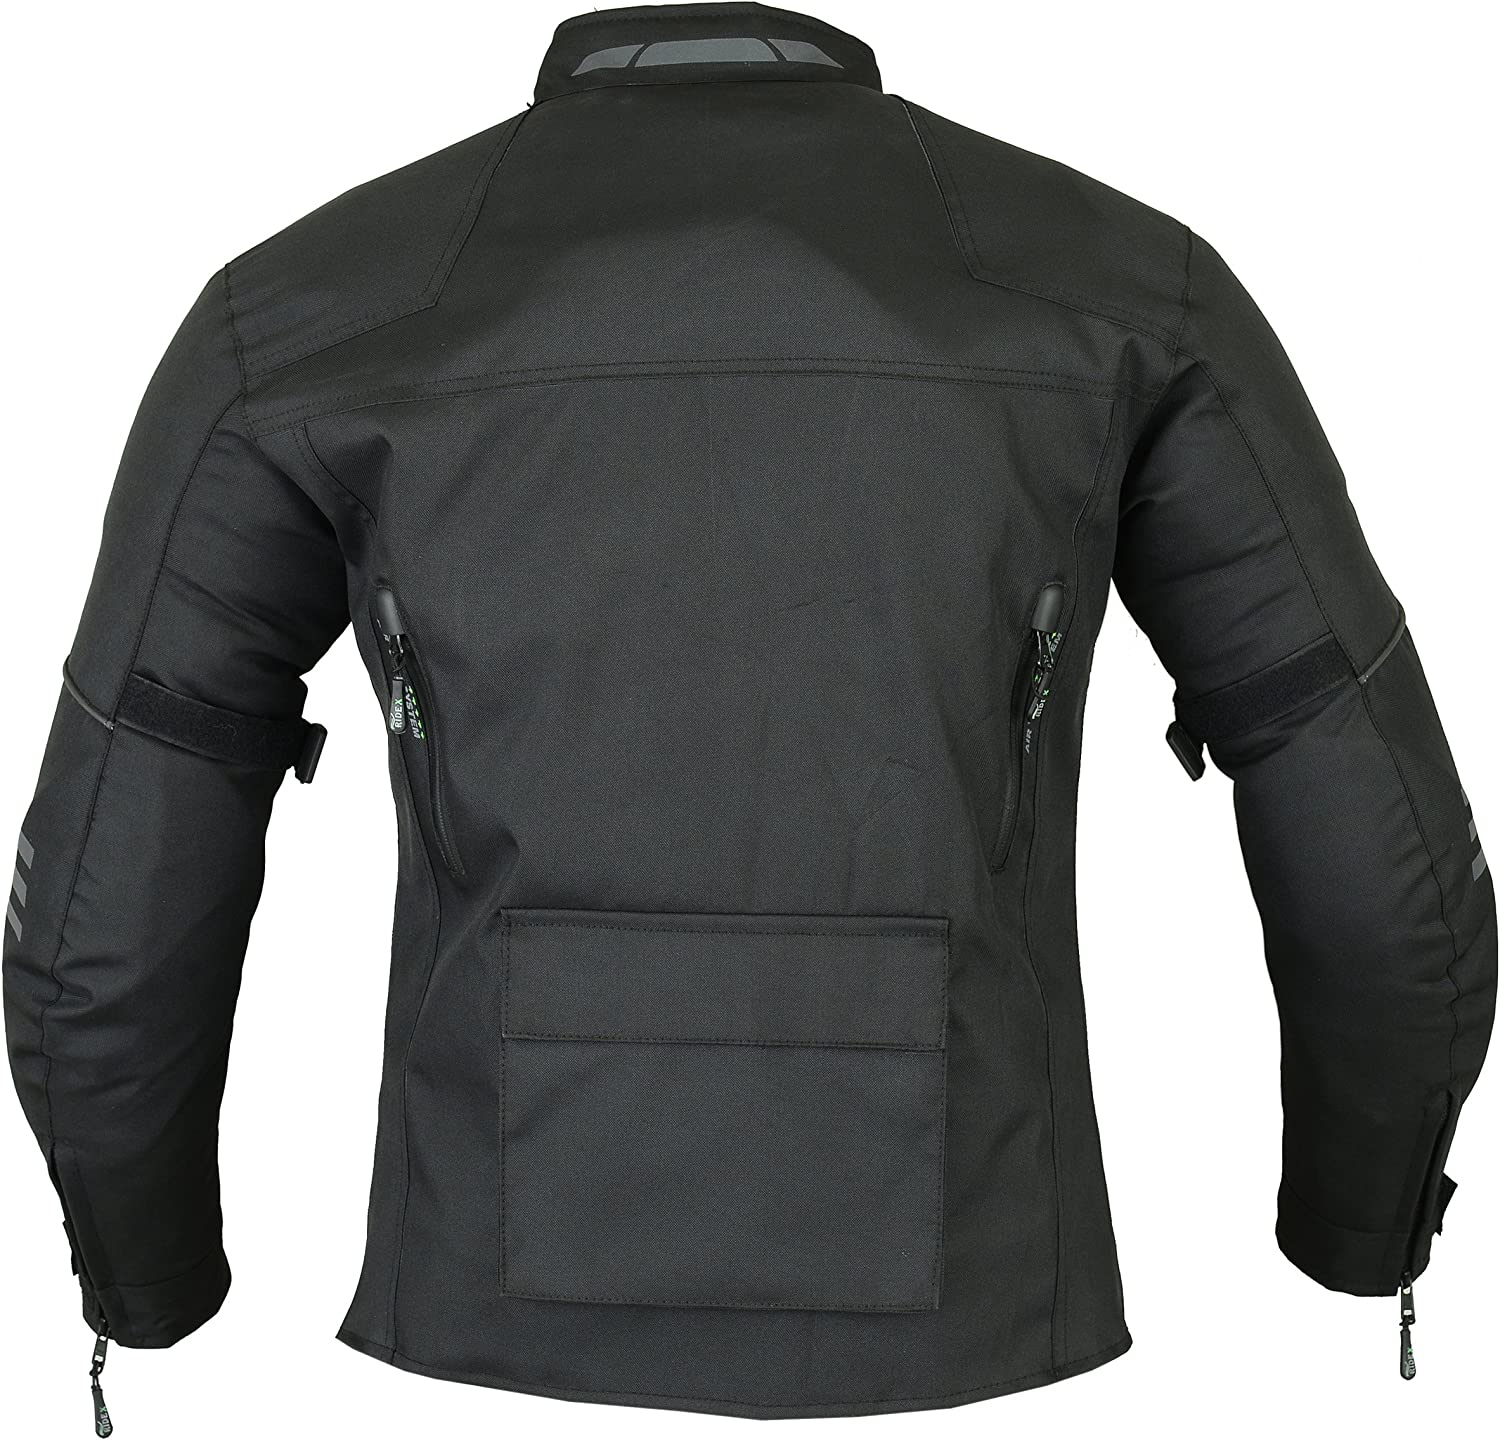 RIDEX Mens CJ1 Motorbike Motorcycle Jacket Protection Waterproof